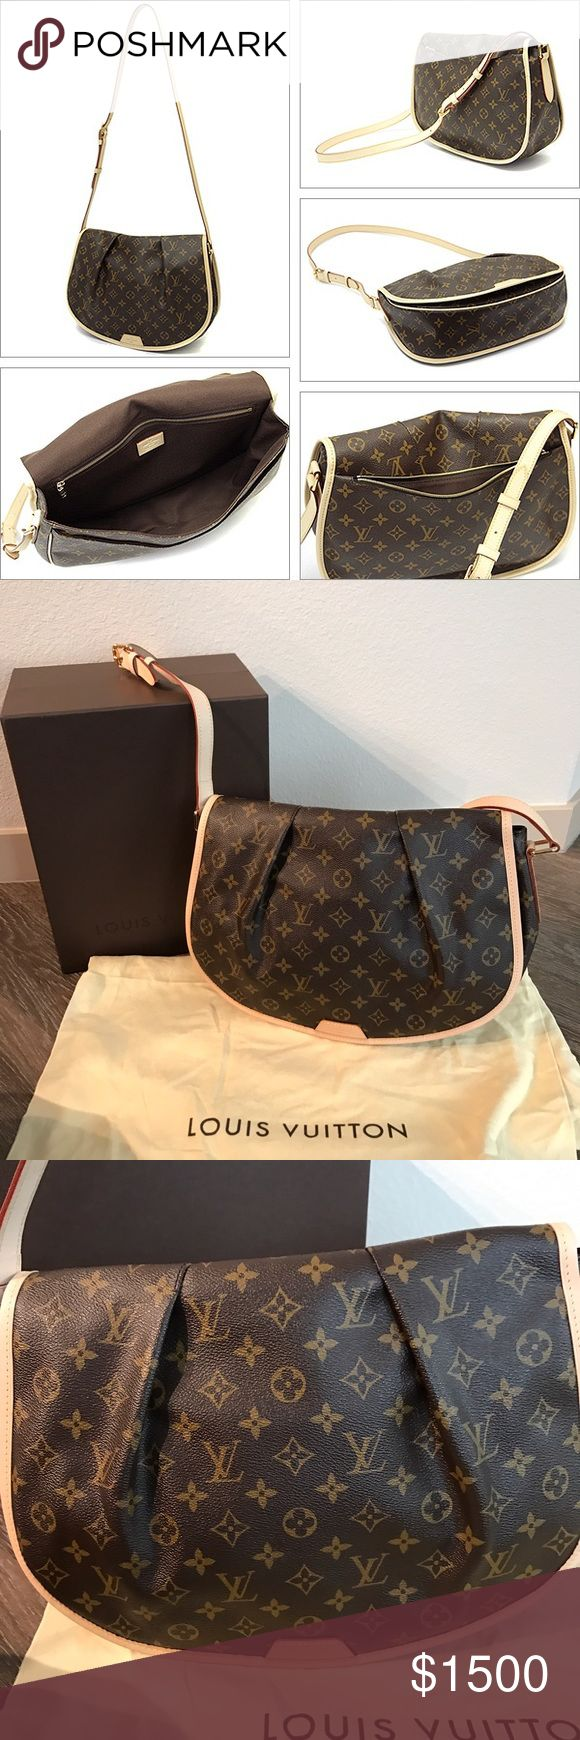 Louis Vuitton Menilmontant mm messenger bag NIB Brand new 100% authentic with storing bag and box  perfect condition this bag came in two sizes this is the larger size of the two retailed at $1,700 no longer being sold in stores cross-body bag is crafted of Louis Vuitton monogram on coated toile canvas. The bag features a vachetta cowhide adjustable cross-body strap with a brass buckle and links, flat exterior pocket on the back, and an attractive full crossover flap with stylish pleats…